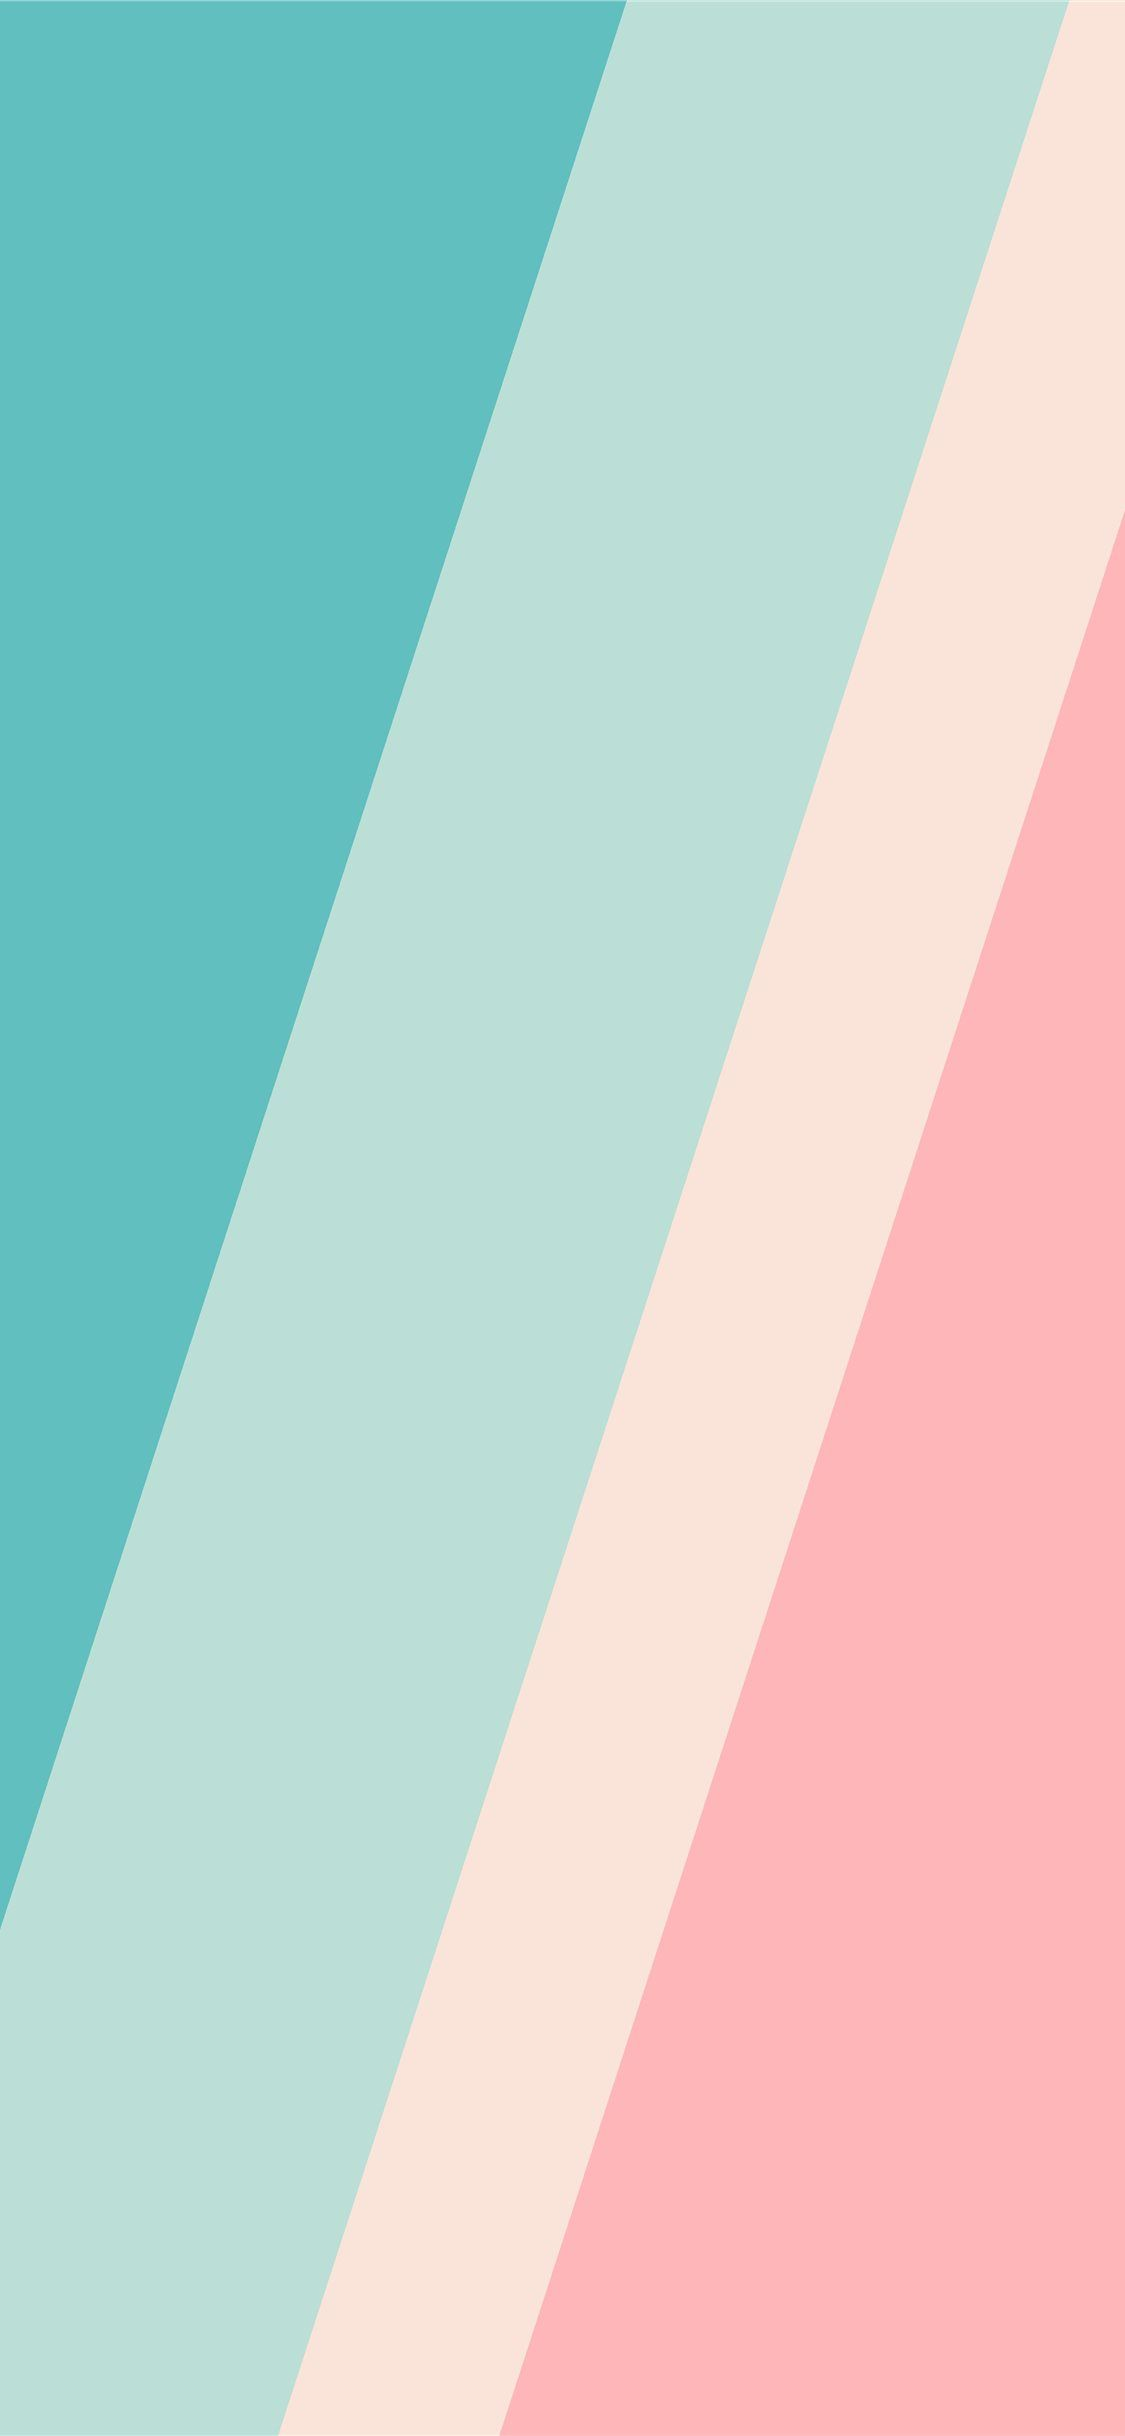 Pink And Teal Striped Textile Teal Teal Wallpaper Iphone Stripe Iphone Wallpaper Teal Wallpaper